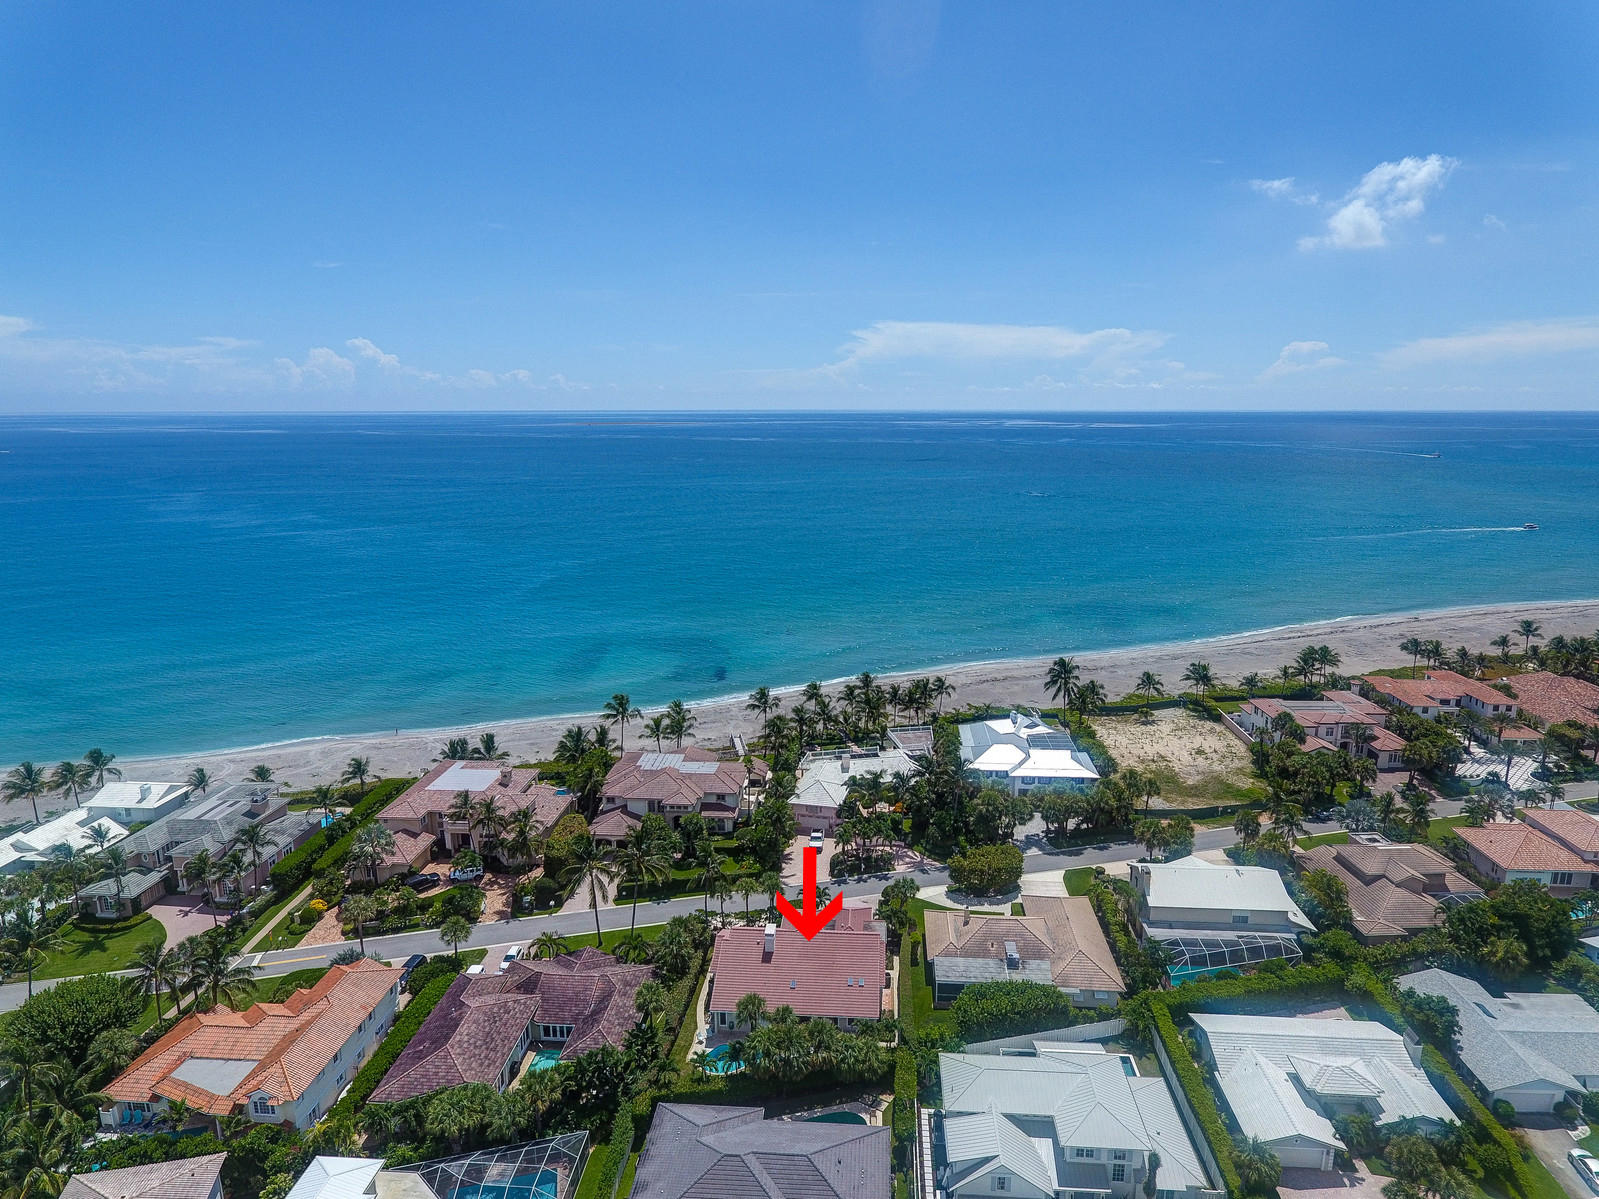 New Home for sale at 41 Ocean Drive in Jupiter Inlet Colony